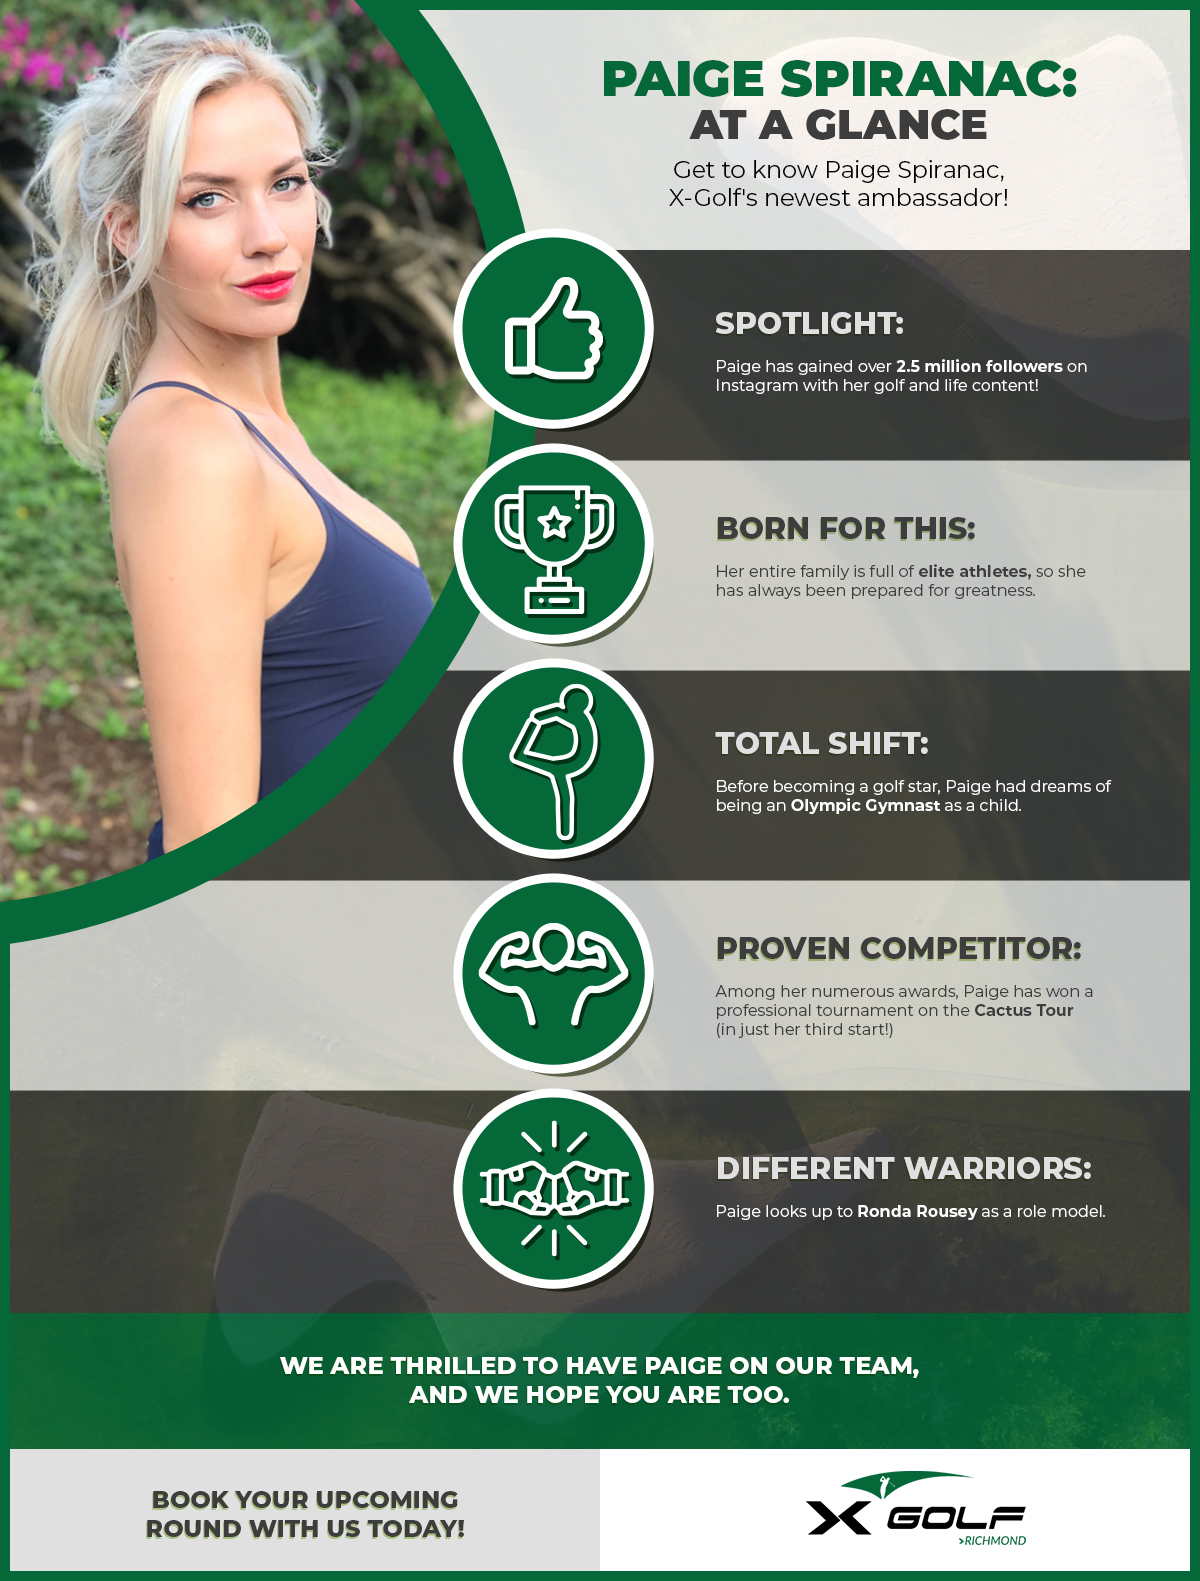 Infographic - Paige Spiranac: At A Glance